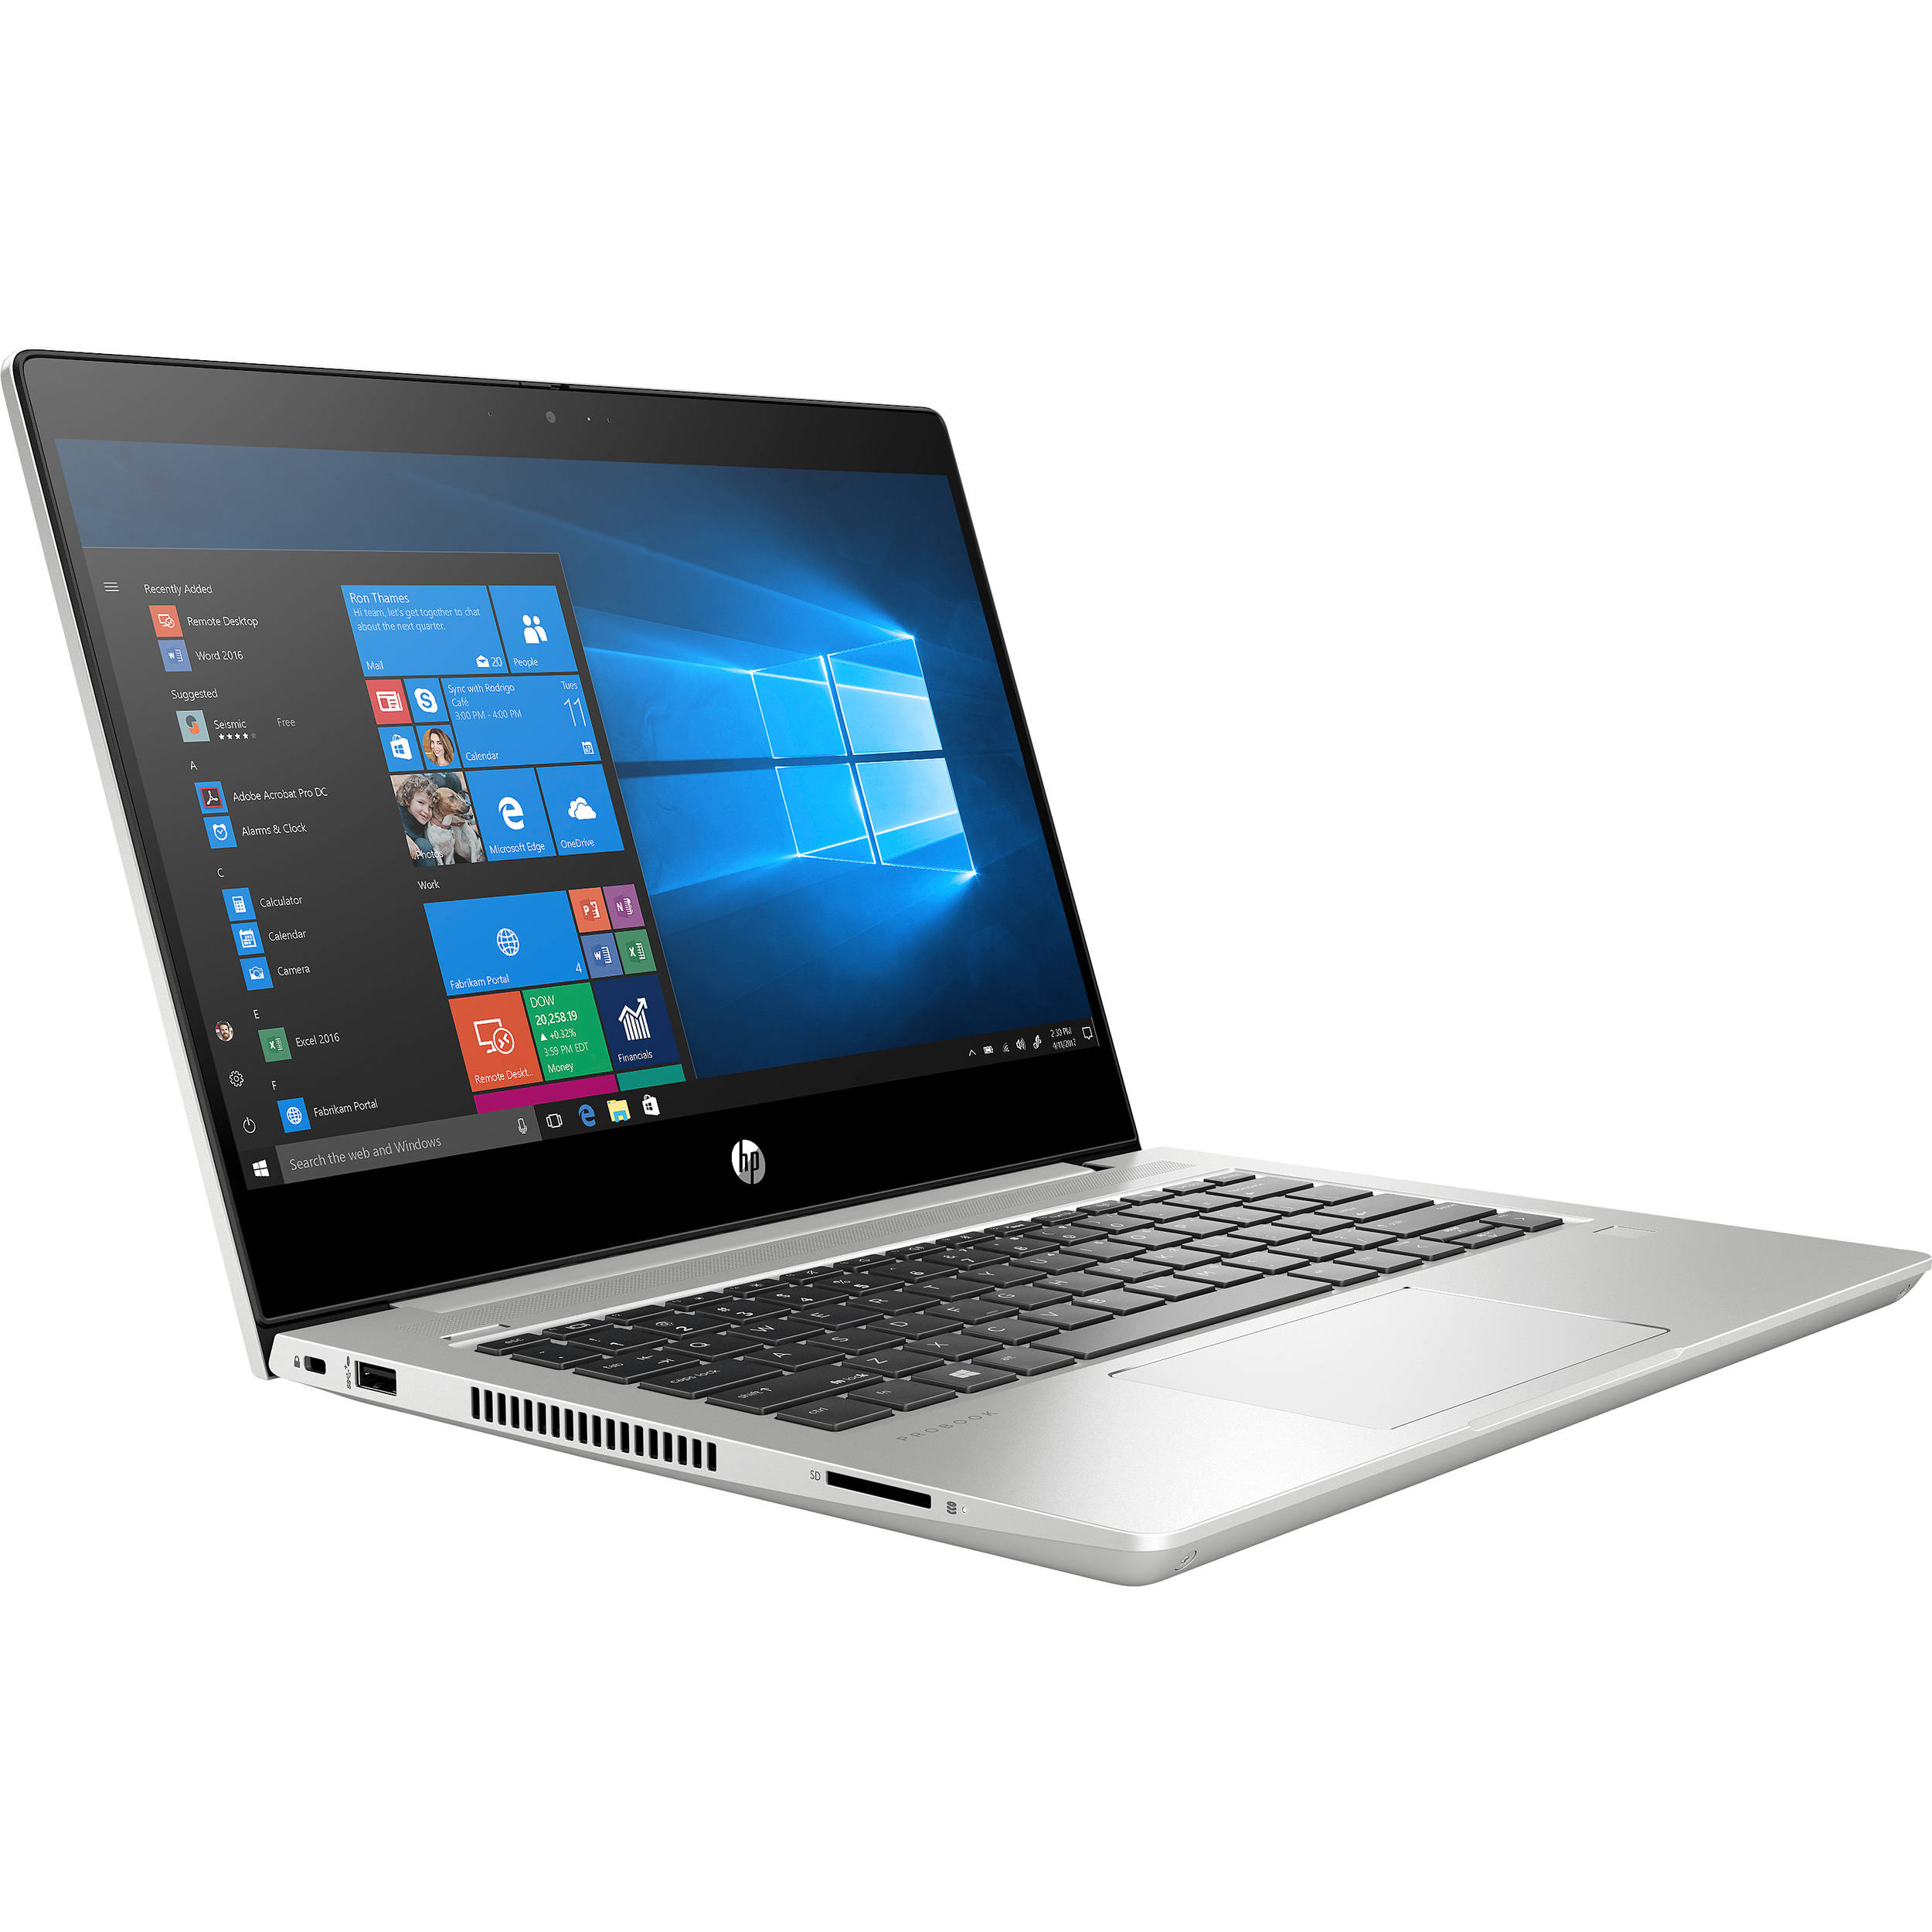 HP ProBook 430 G7 13.3' FHD IPS i5-10210U 8GB 256GB SSD WIN10 HOME USB-C HDMI Backlit 3CELL 1.49kg 1YR W10H Notebook (9UQ45PA)